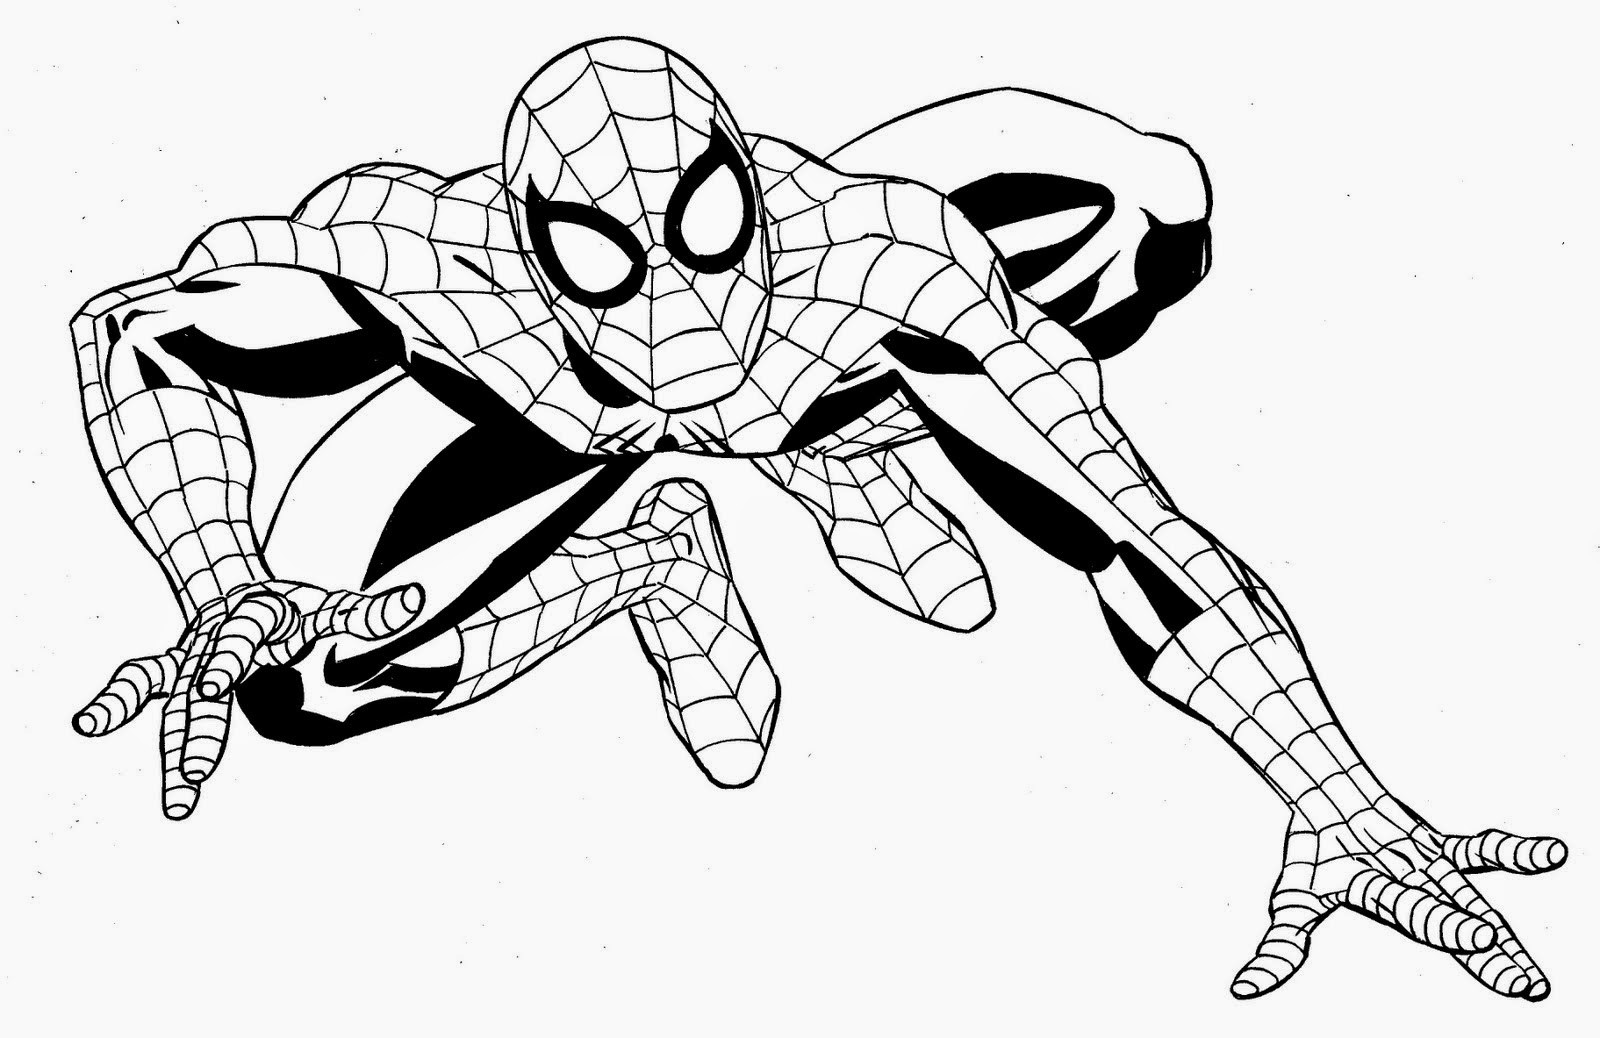 Best ideas about Superhero Free Coloring Pages . Save or Pin Coloring Pages Superhero Coloring Pages Free and Printable Now.